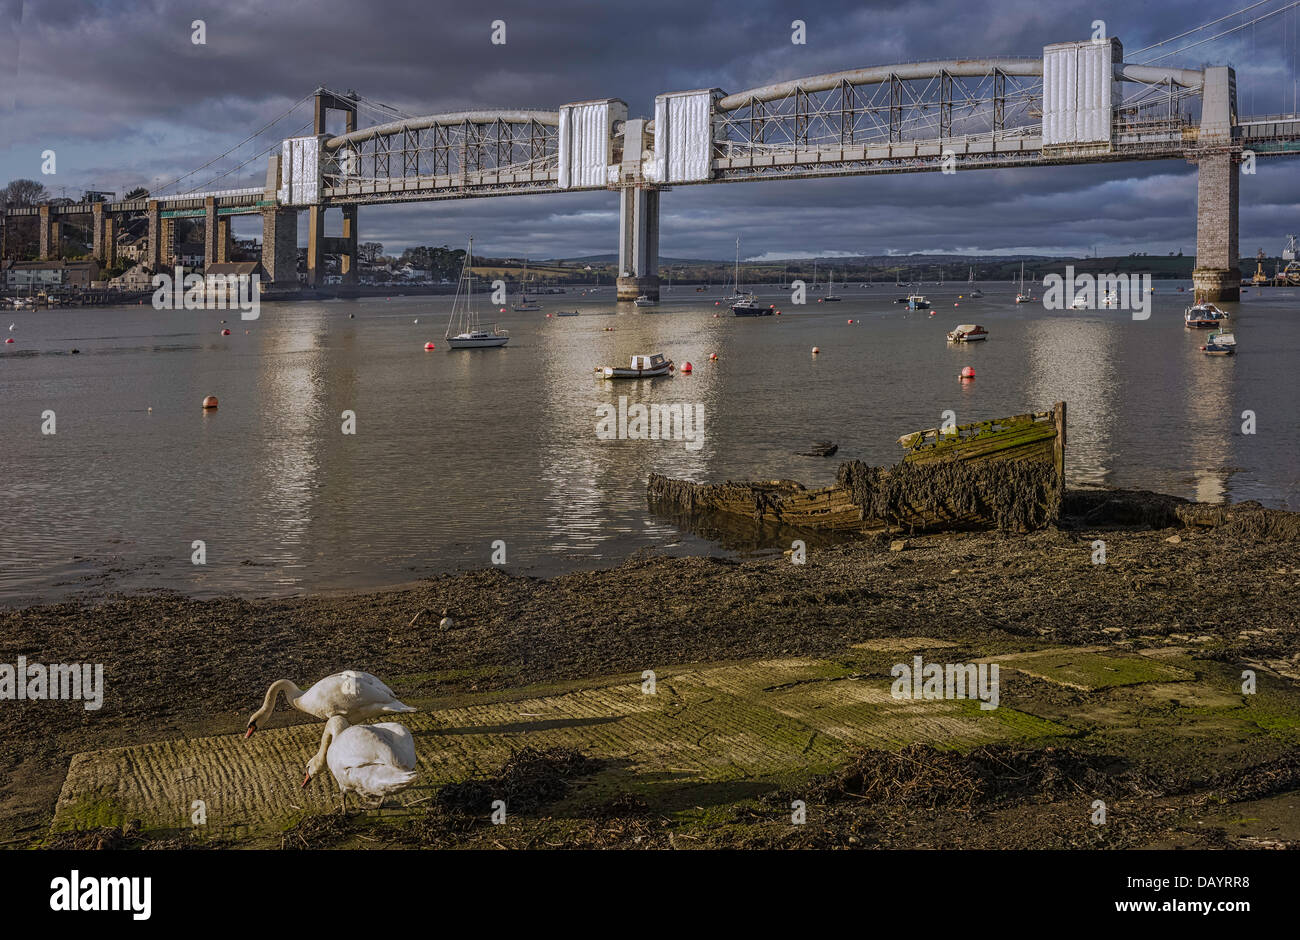 Prince Albert Bridge over the river Tamar with rotting boat and swans on river bank in Plymouth, Devon, England. Stock Photo